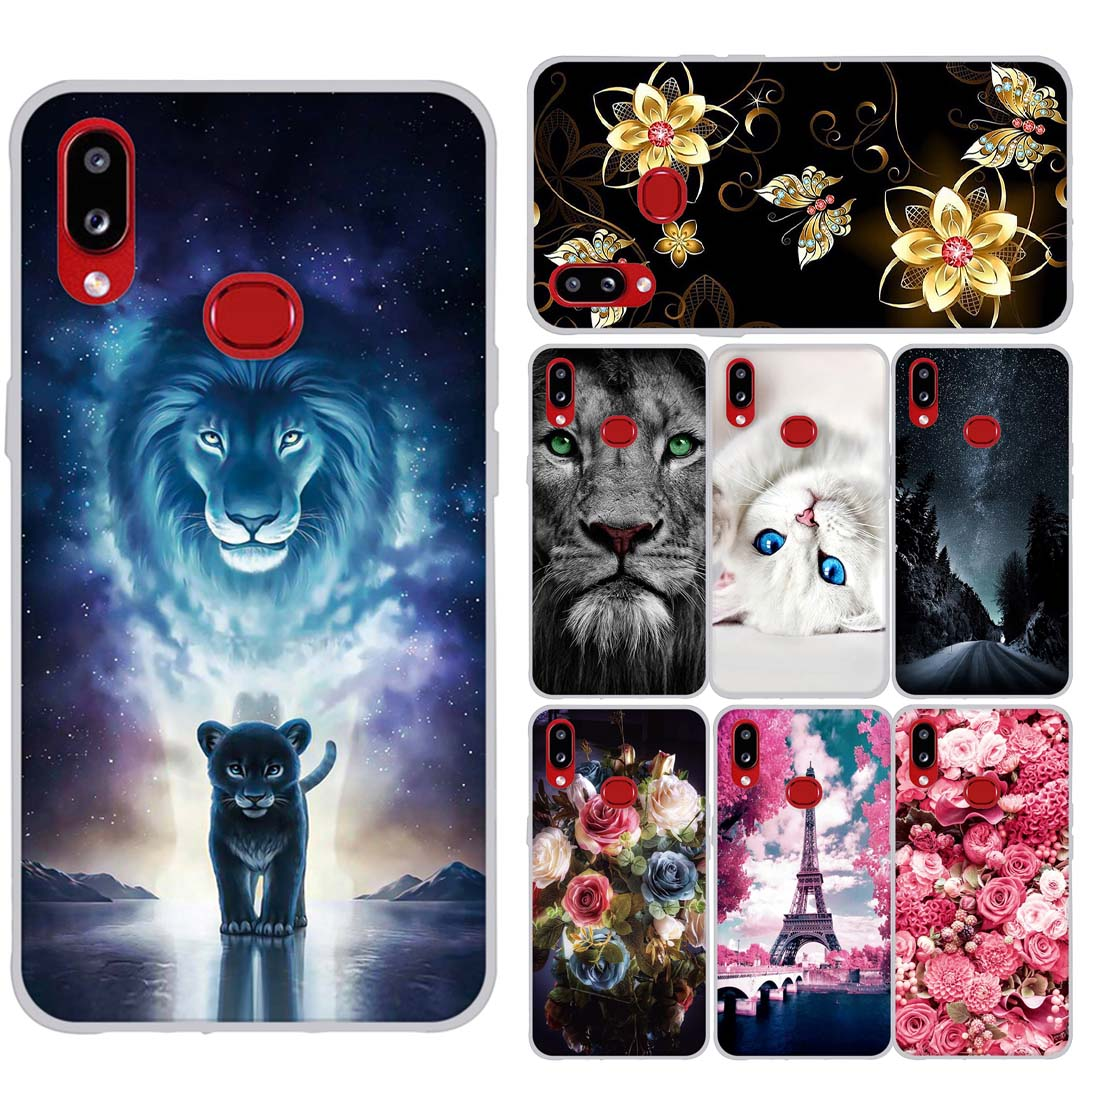 Case For Samsung A10s Case Soft Silicon Back Cover Phone Case For Samsung Galaxy A10s GalaxyA10s SM-<font><b>A107F</b></font> A107 <font><b>A107F</b></font> Back Covers image